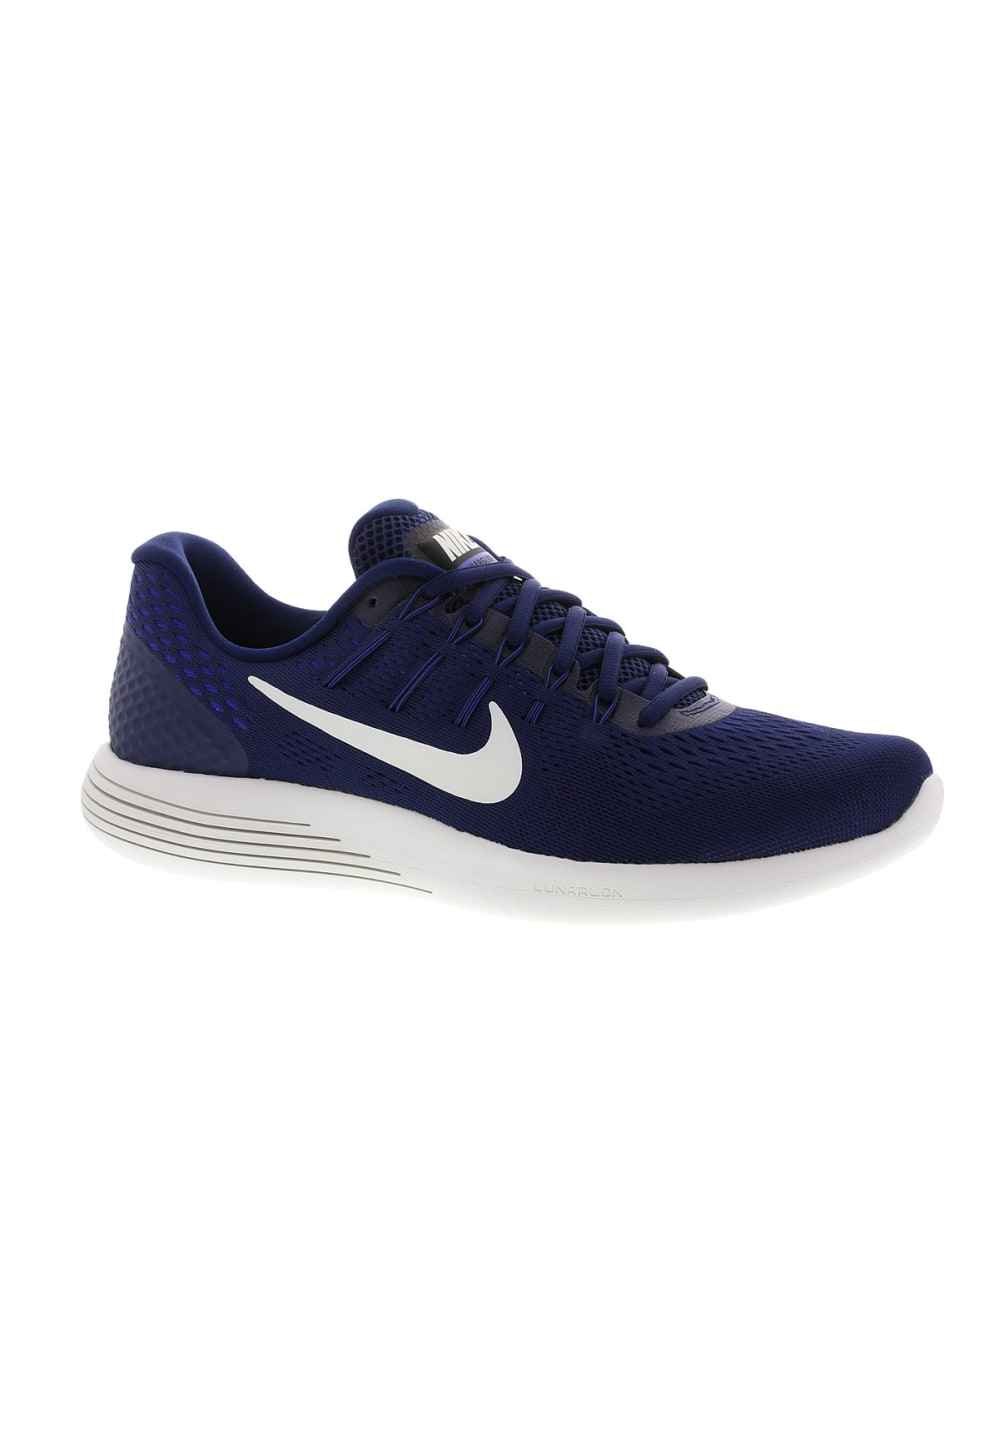 outlet store 89ae4 f4502 Nike Lunarglide 8 - Running shoes for Men - Blue